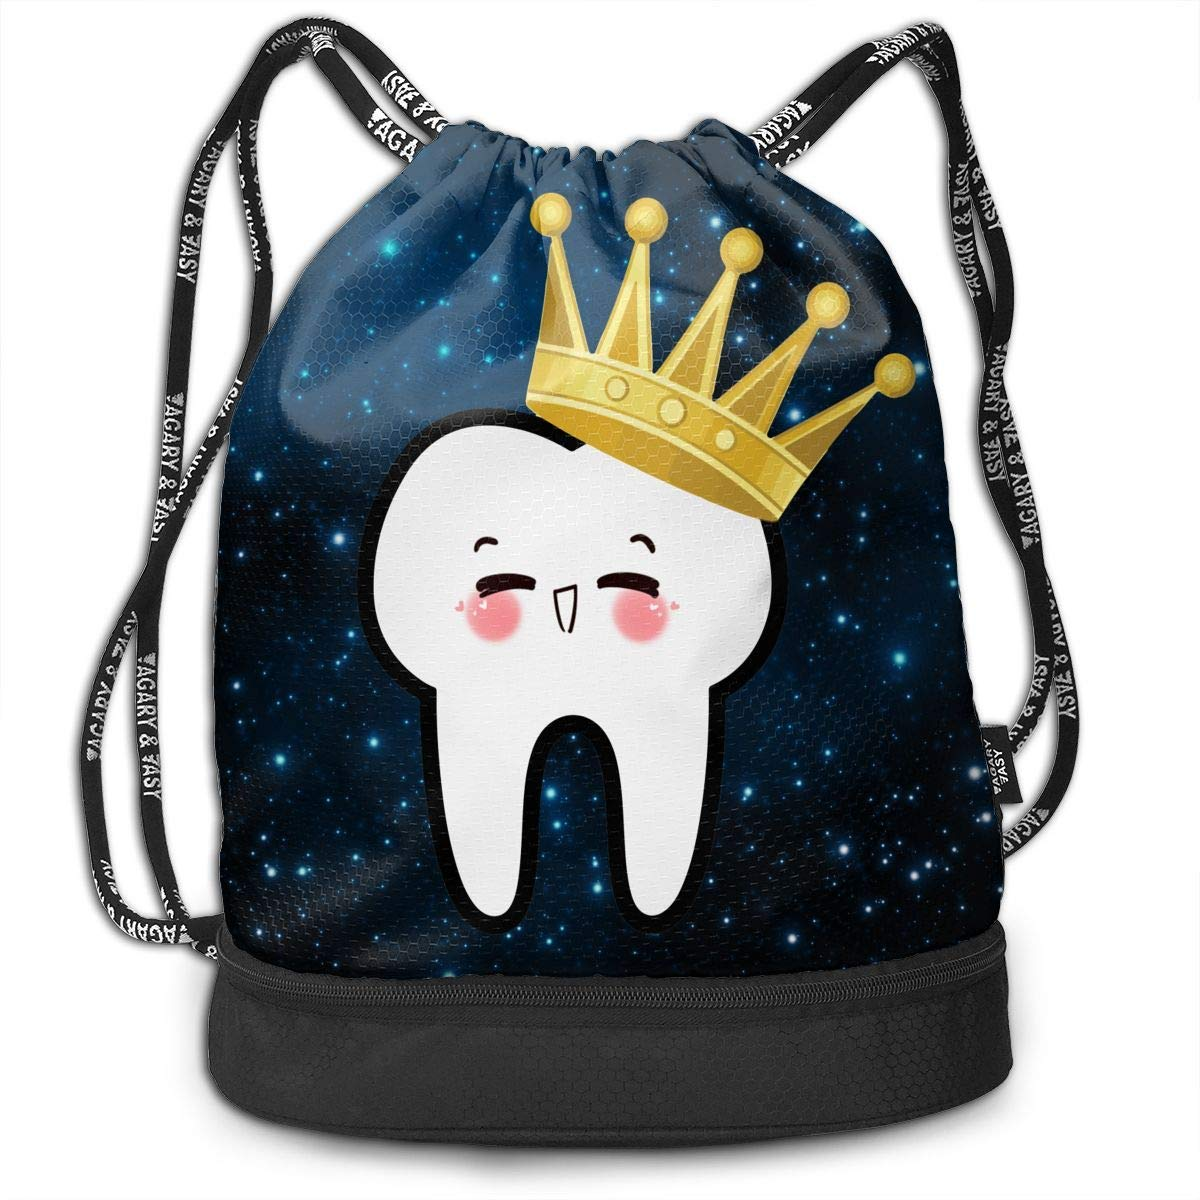 fgregtrg Crown Tooth Molar ort Gym Sack Bag Drawstring Backpack SB1Y5F5IYXIN03R3FM5T